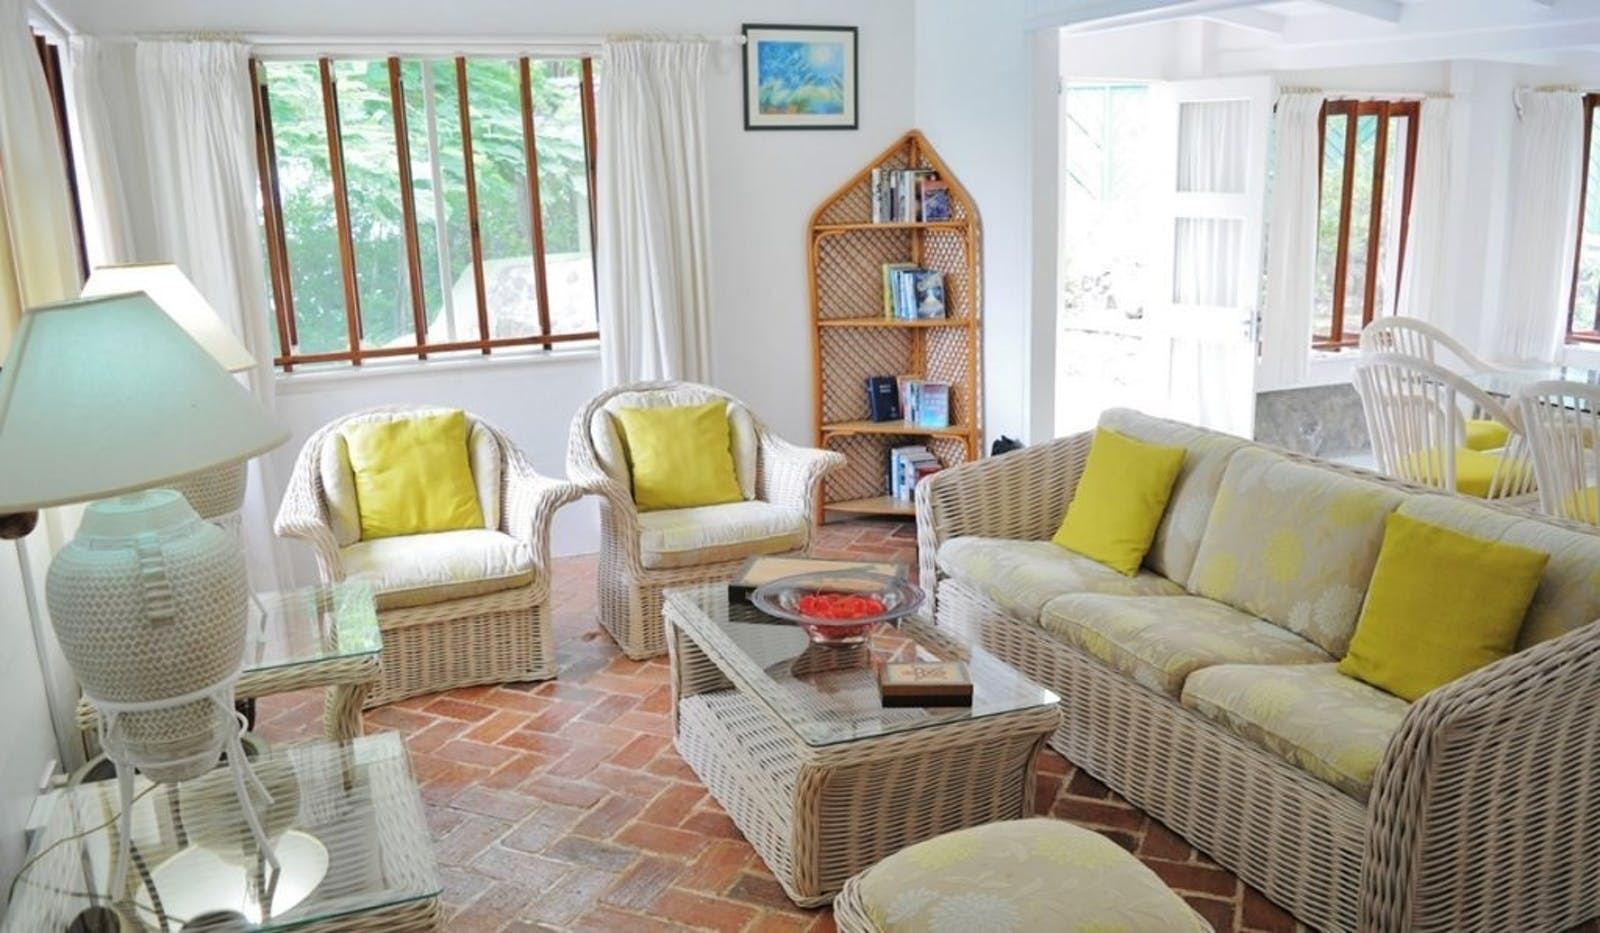 Duvernette Suite at Young Island, St. Vincent & The Grenadines, Caribbean